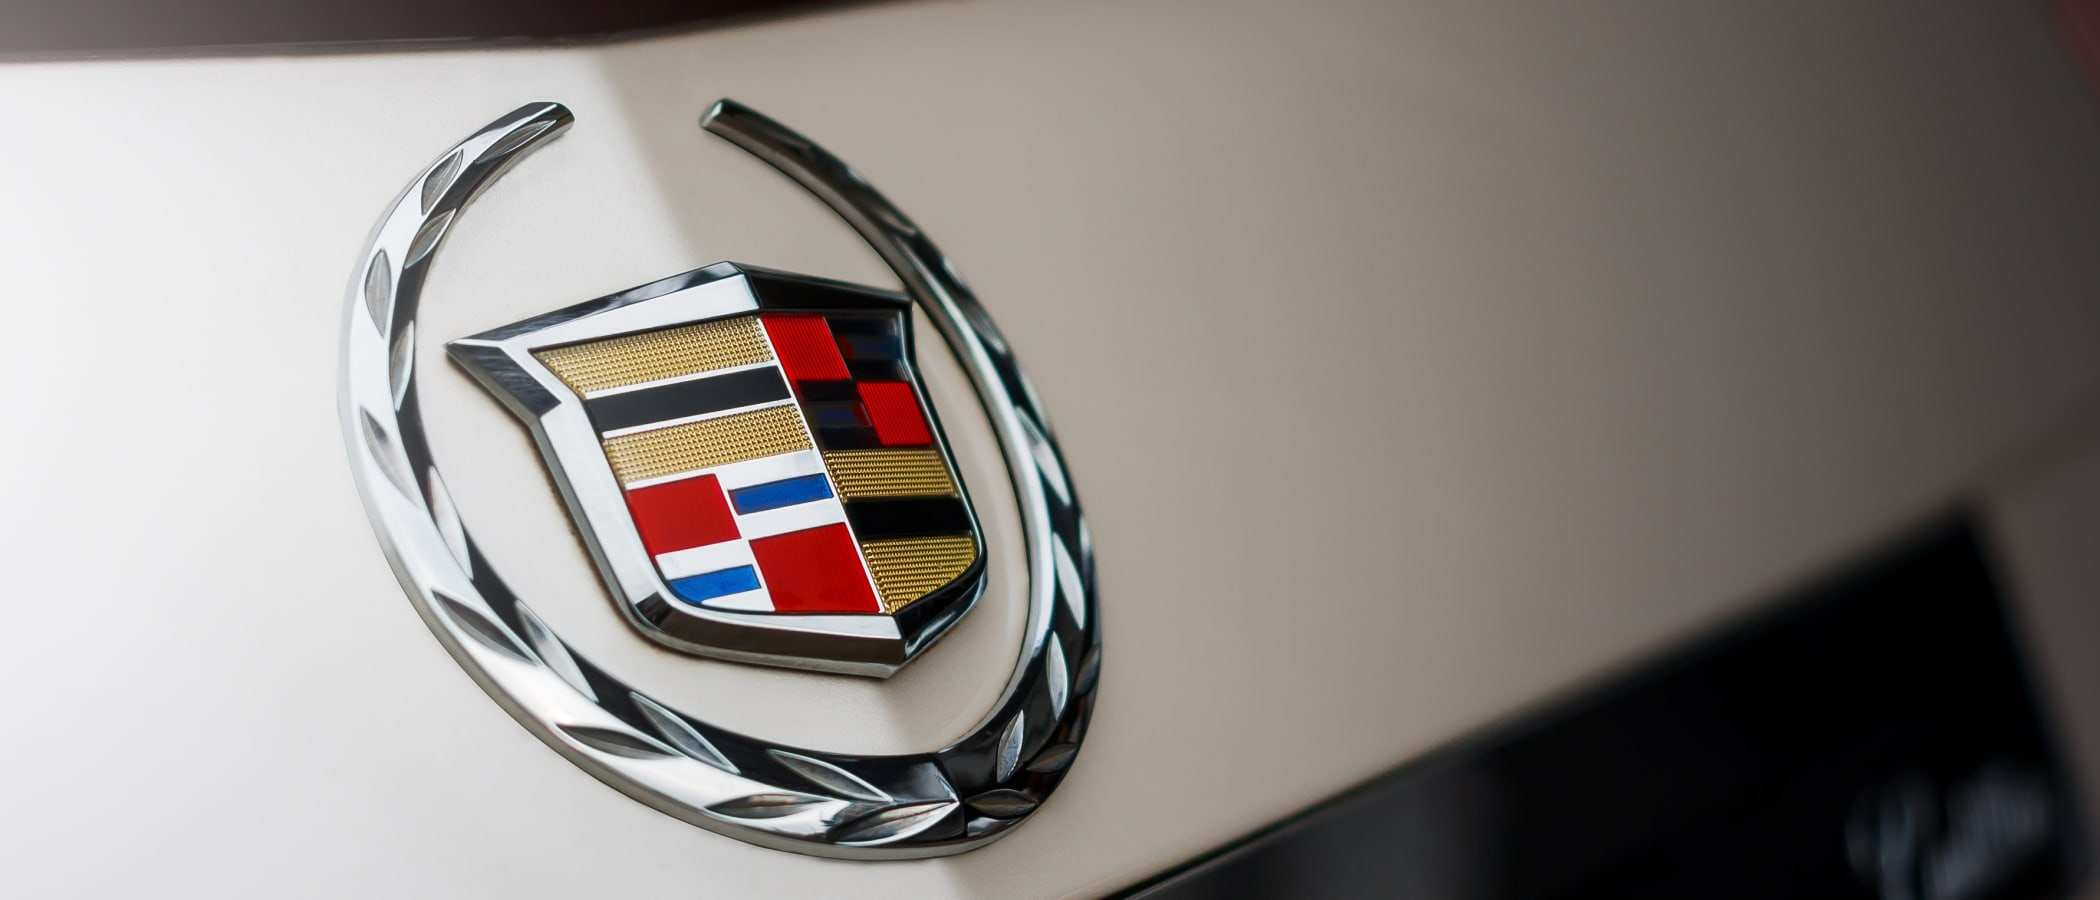 80 All New 2020 Cadillac Tax Prices by 2020 Cadillac Tax